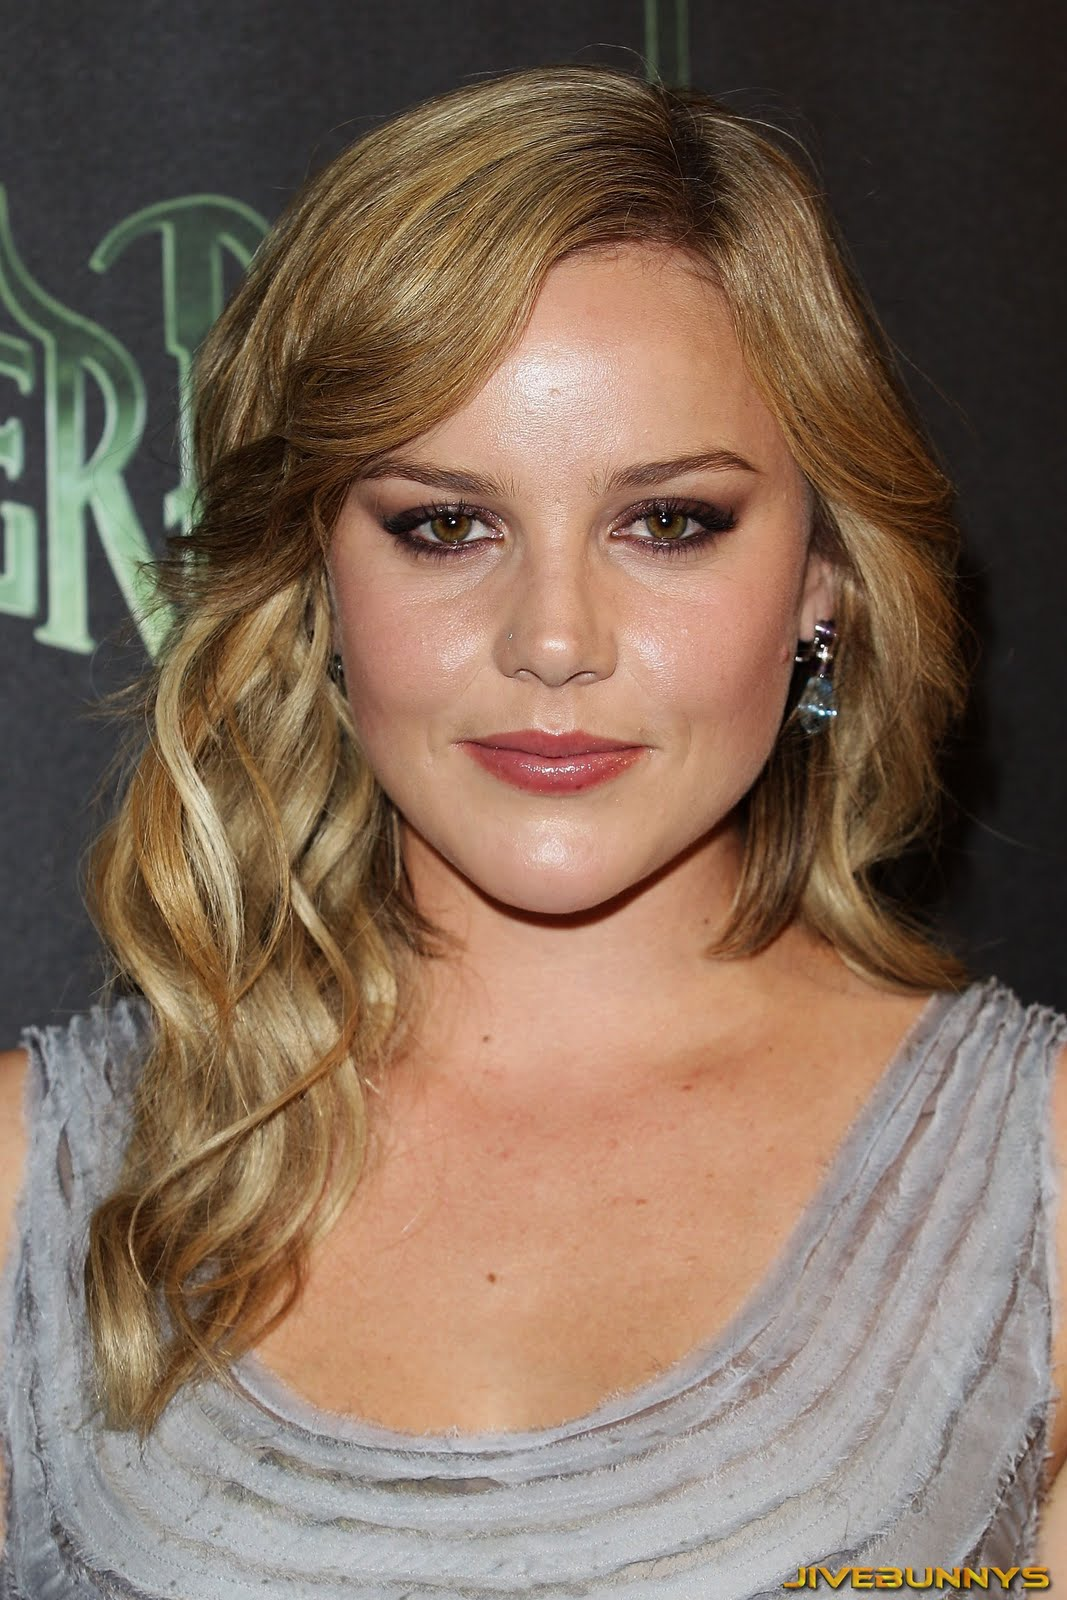 http://1.bp.blogspot.com/-64VC4D0euVk/T4LEUK4f8EI/AAAAAAAAFRk/p03jPxffKXY/s1600/abbie-cornish-sucker-punch-london-22001.jpg